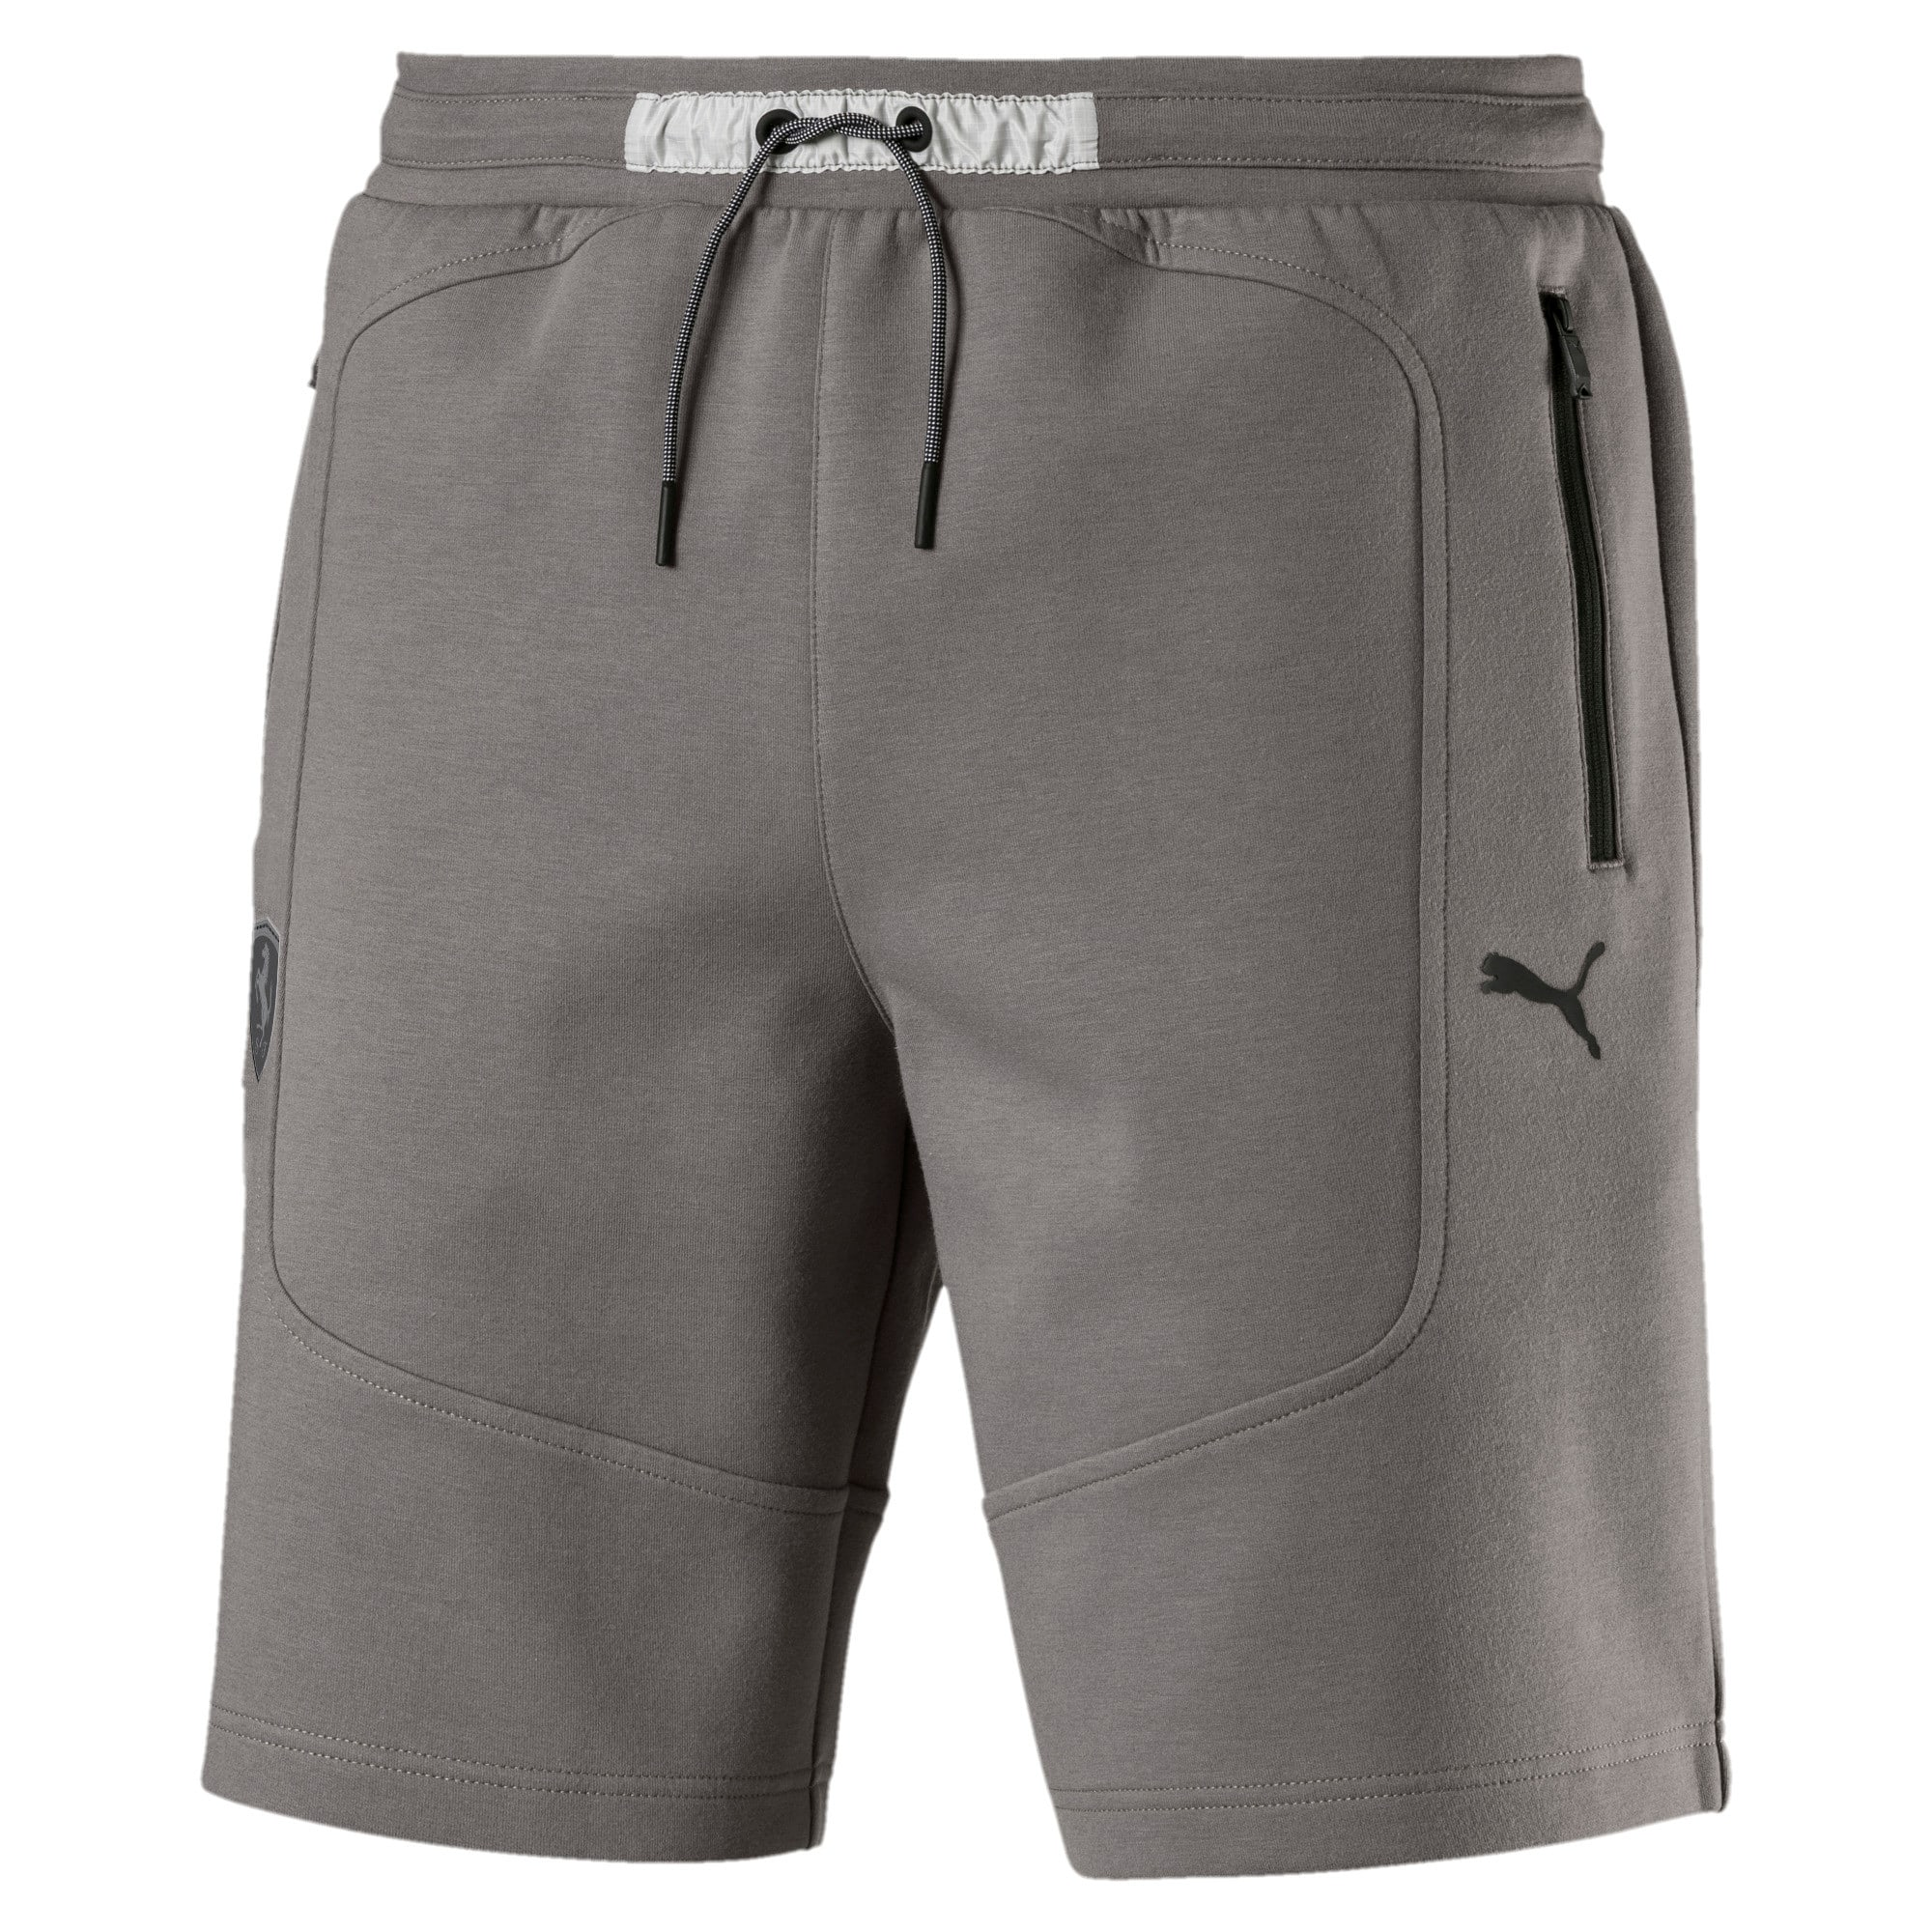 Ferrari Knitted Men's Shorts, Charcoal Gray, large